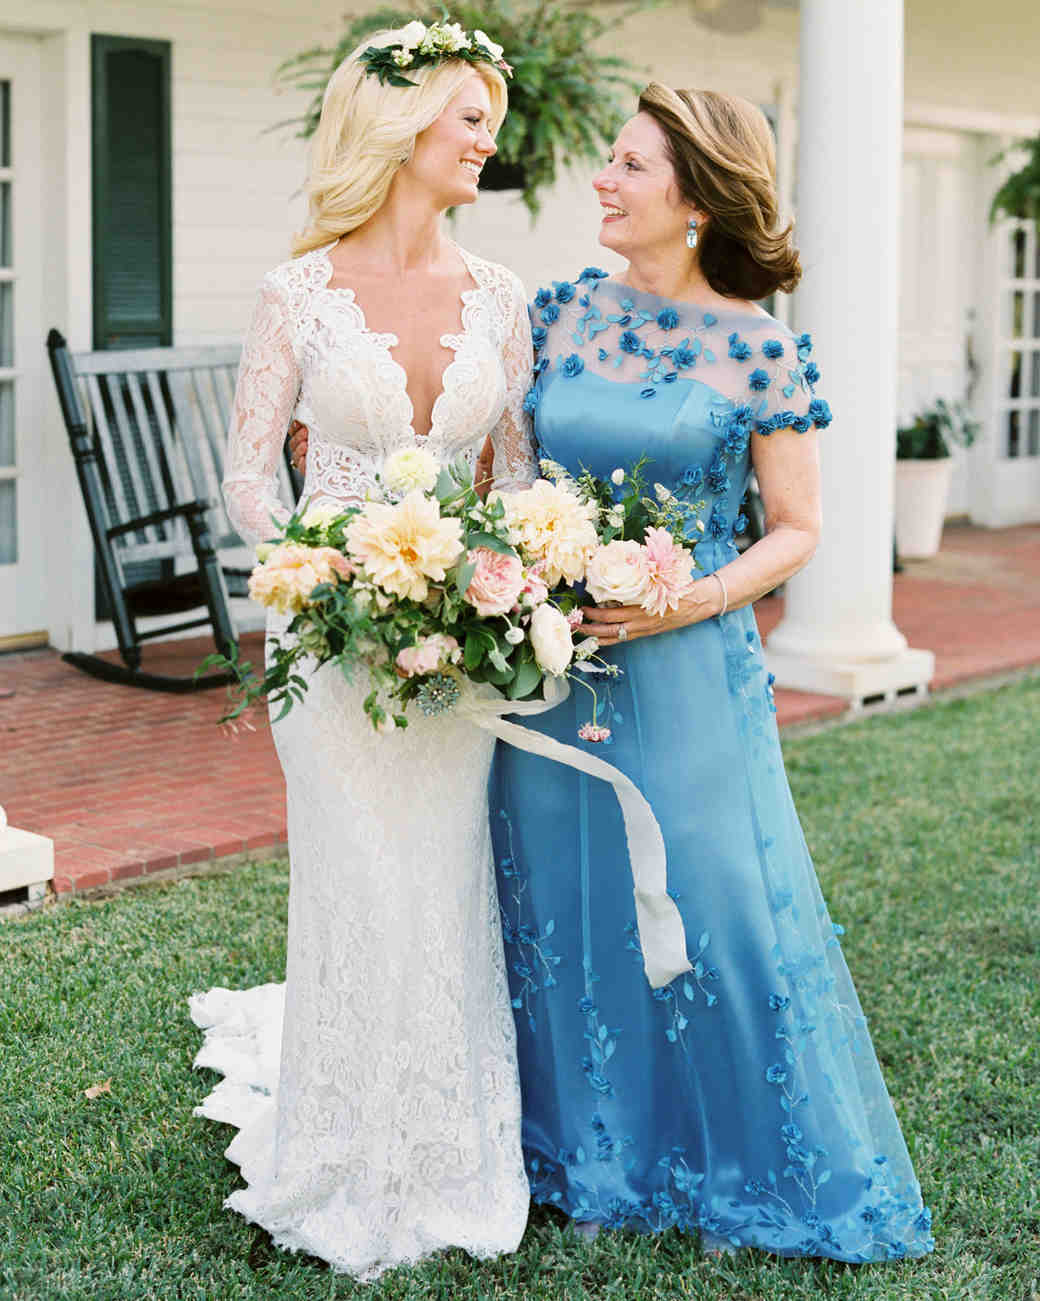 Mother-of-the-Bride Dresses That Wowed at Weddings | Martha Stewart ...